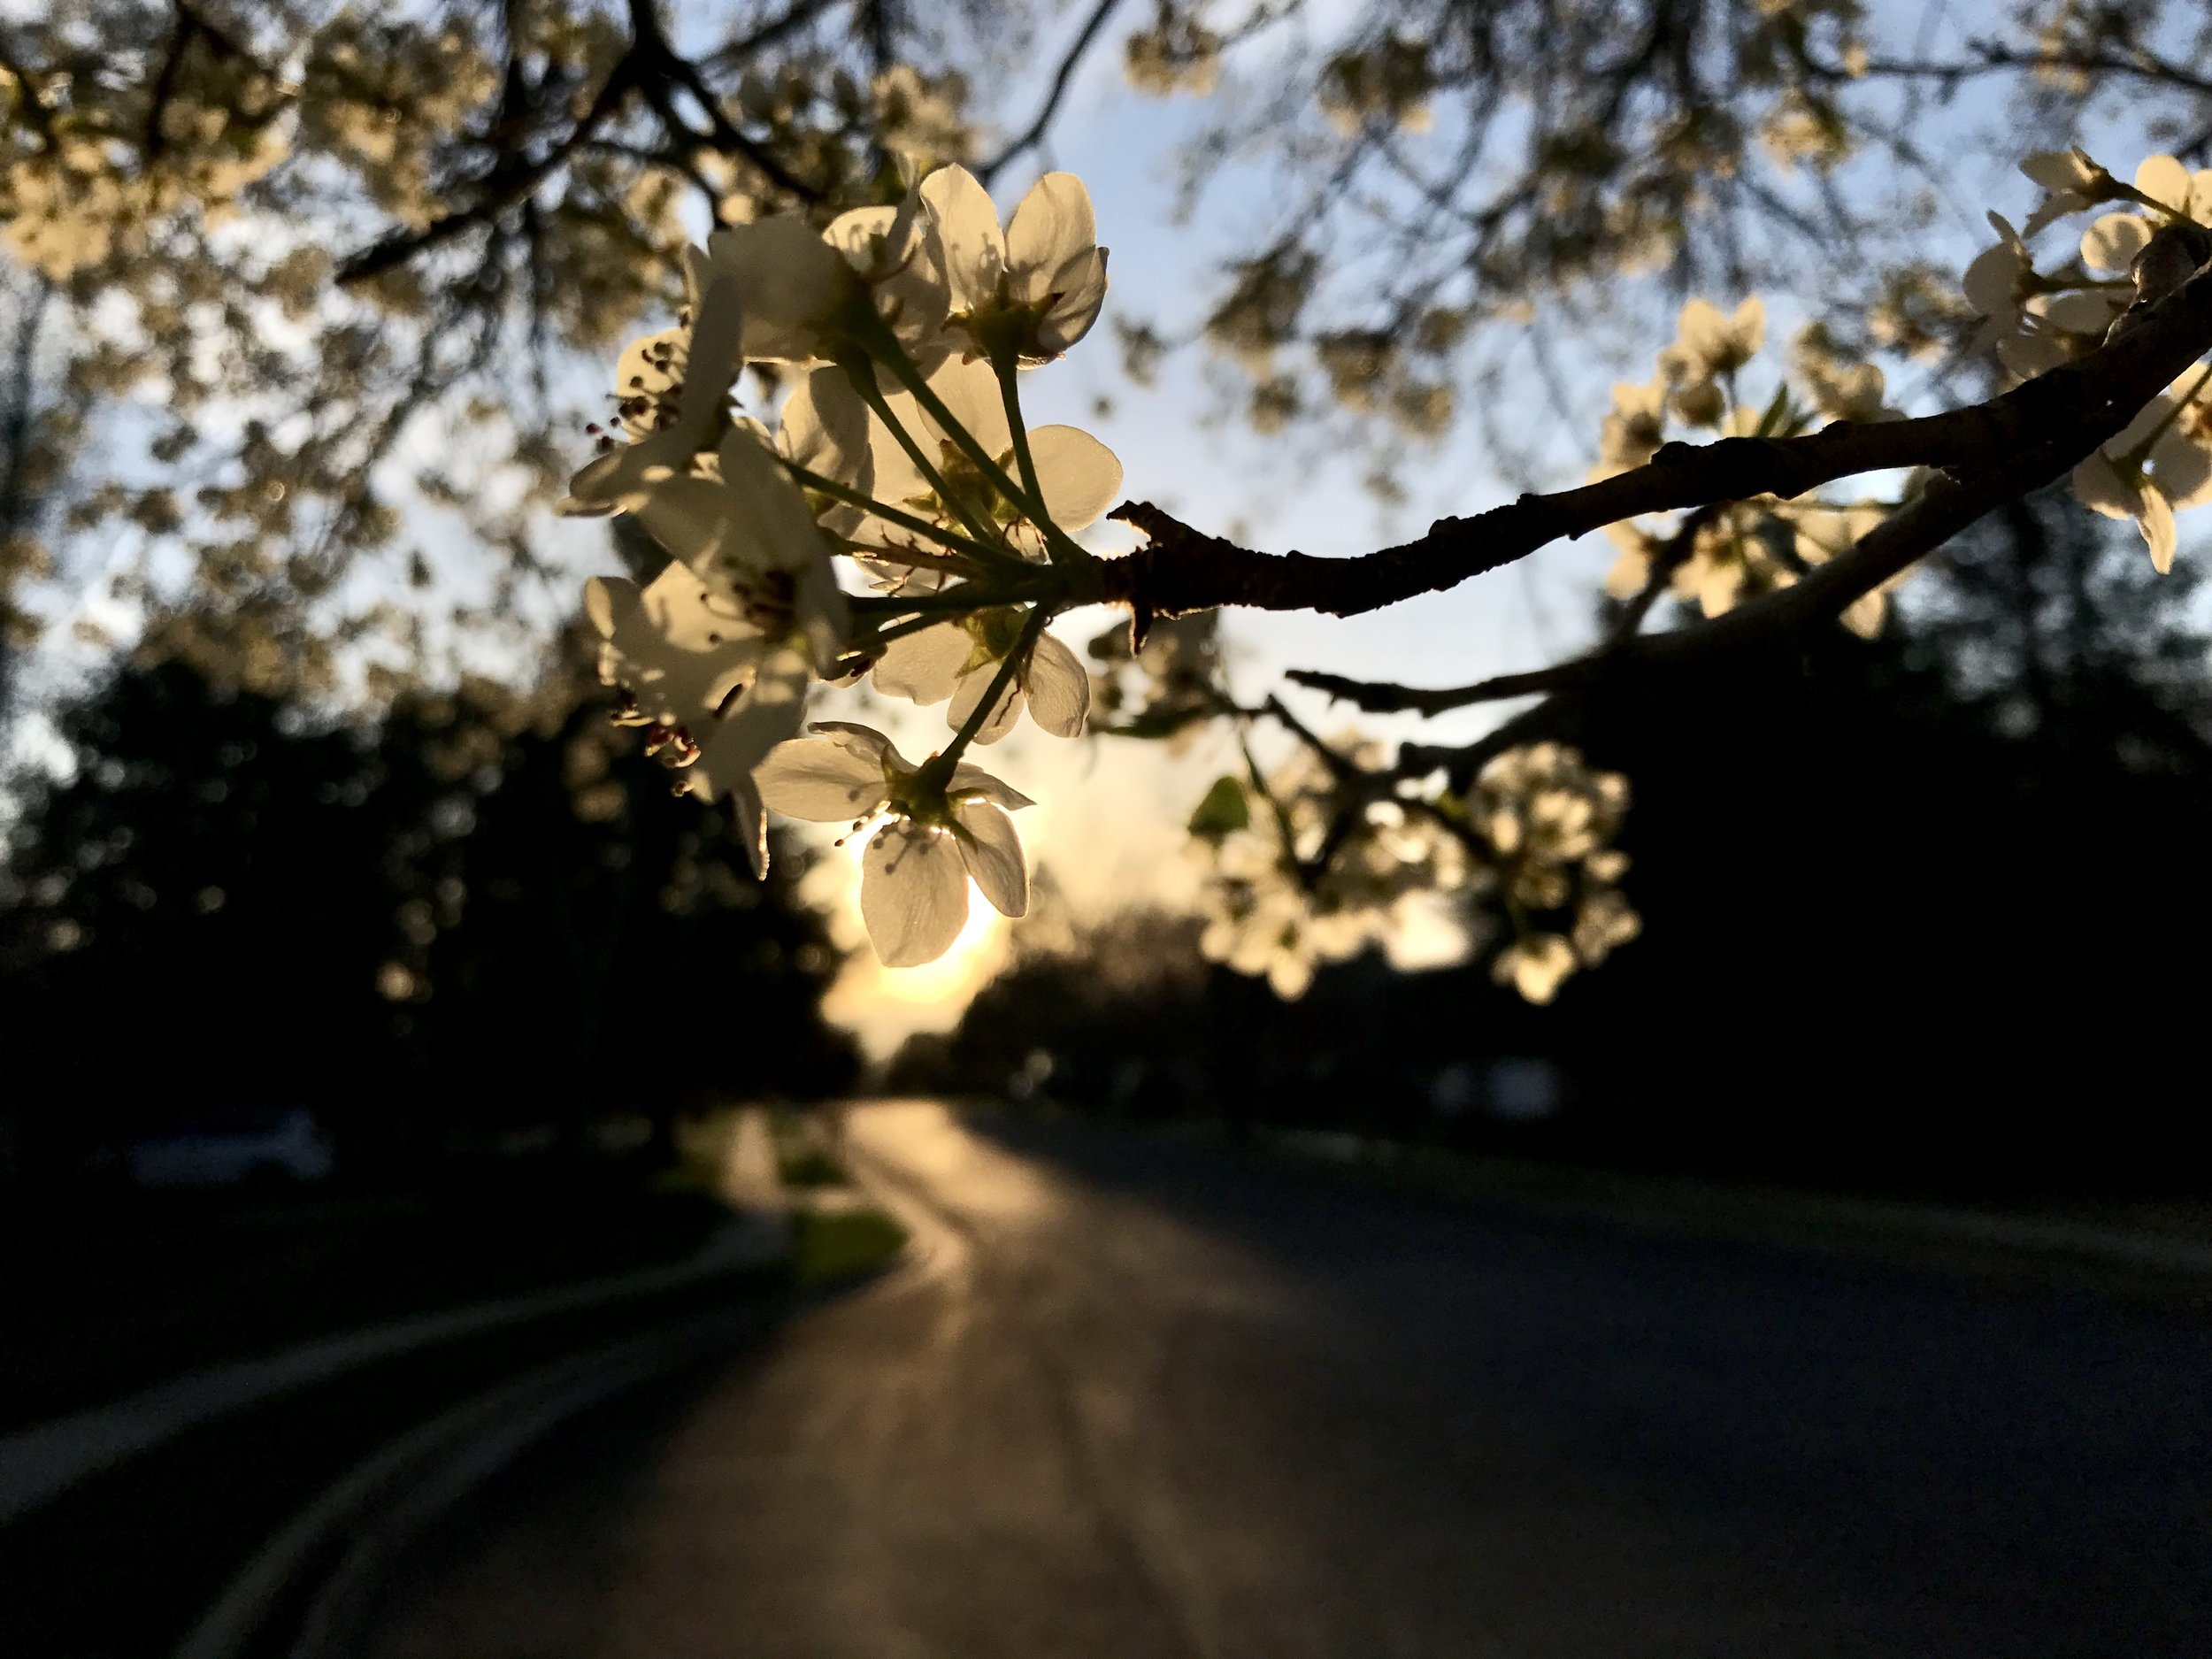 Tree blossoms in the spring